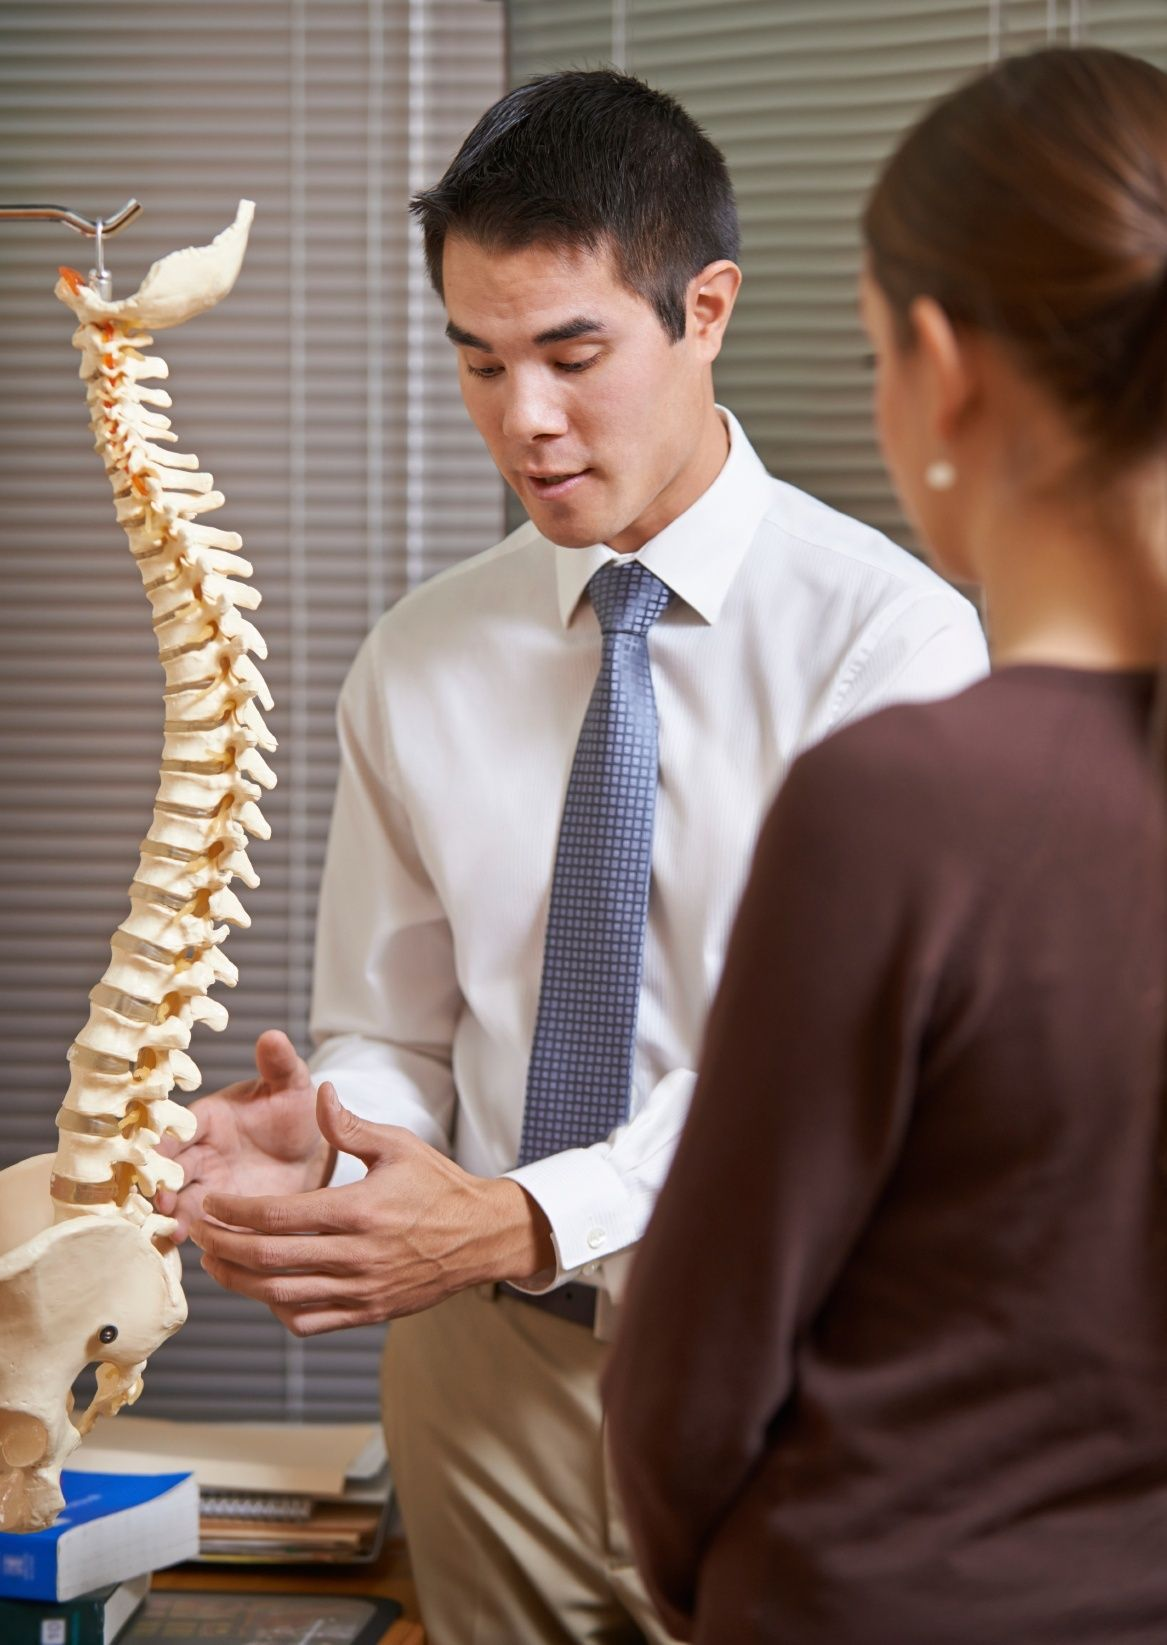 There are things you can expect during your first visit to the chiropractor